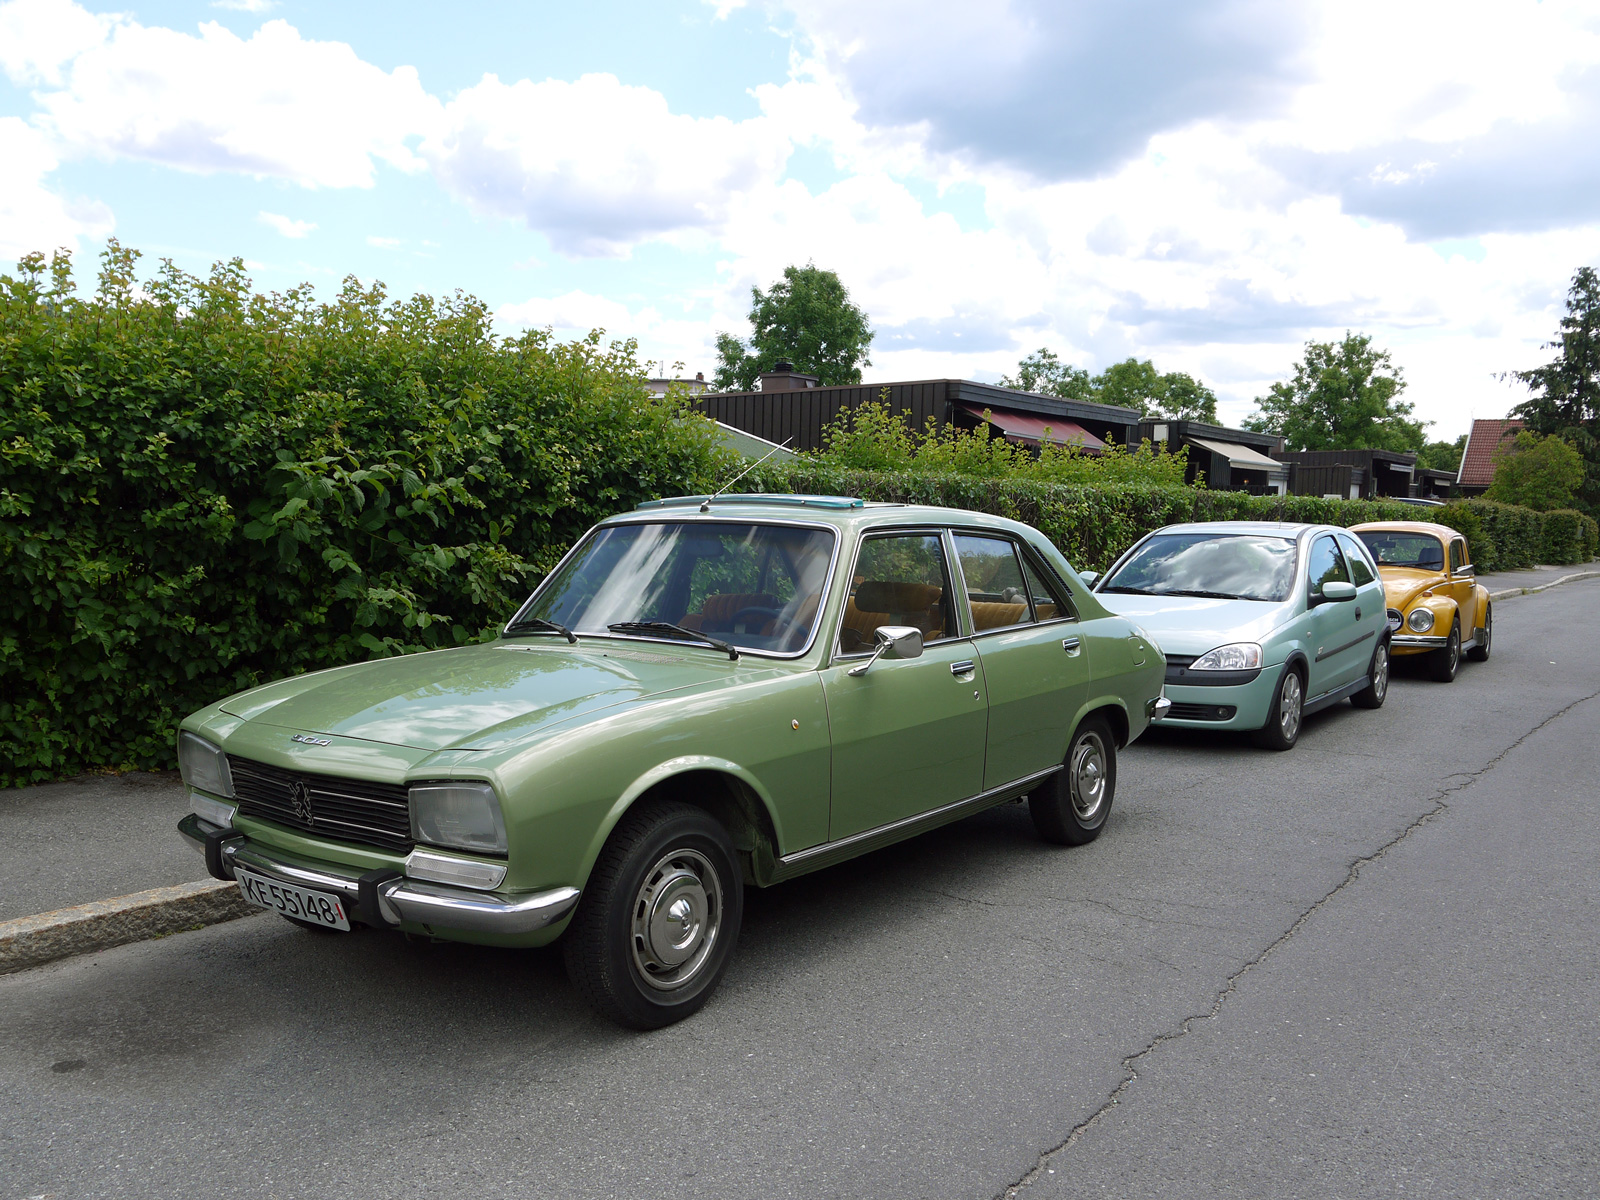 1977 Peugeot 504 GL Mint parked classic cars Oslo